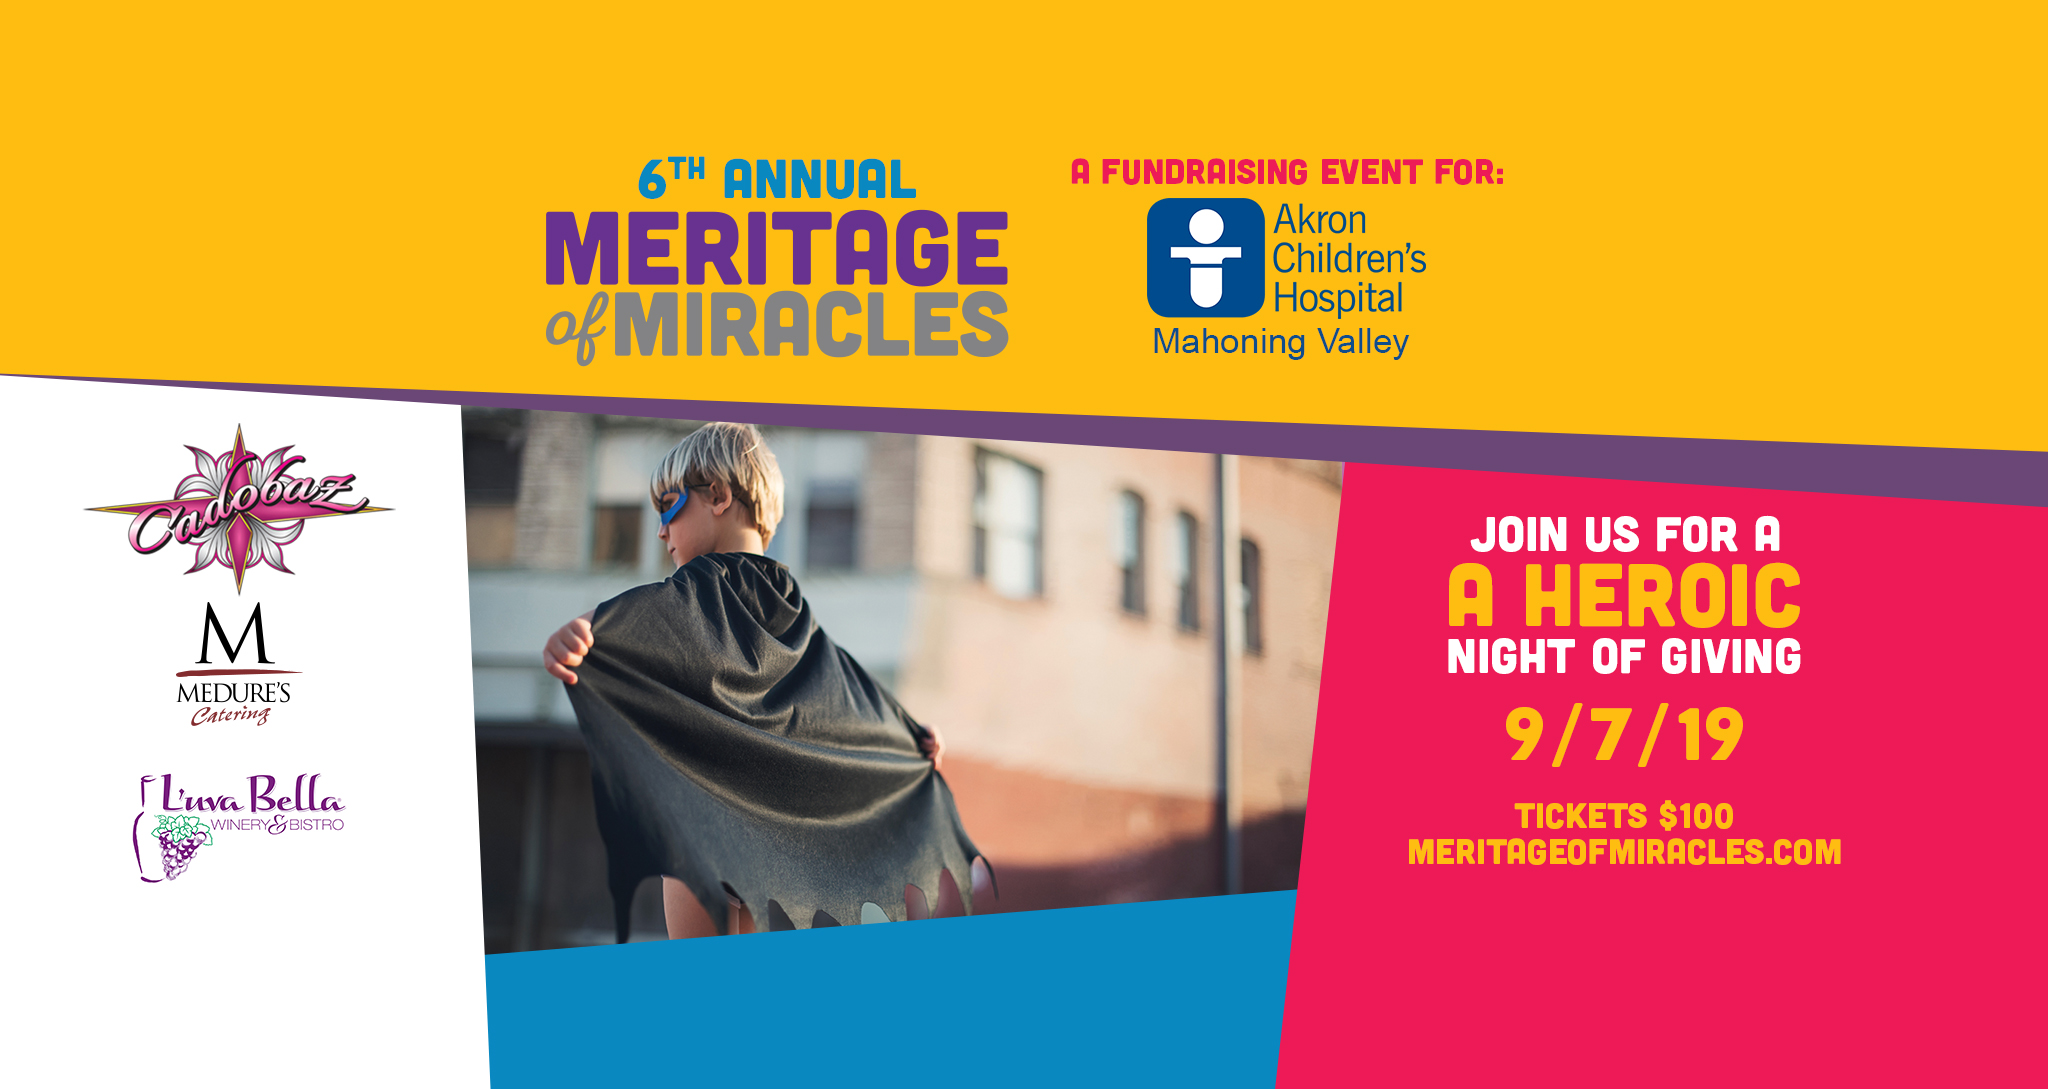 meritage of miracles 2019 long flyer.jpg